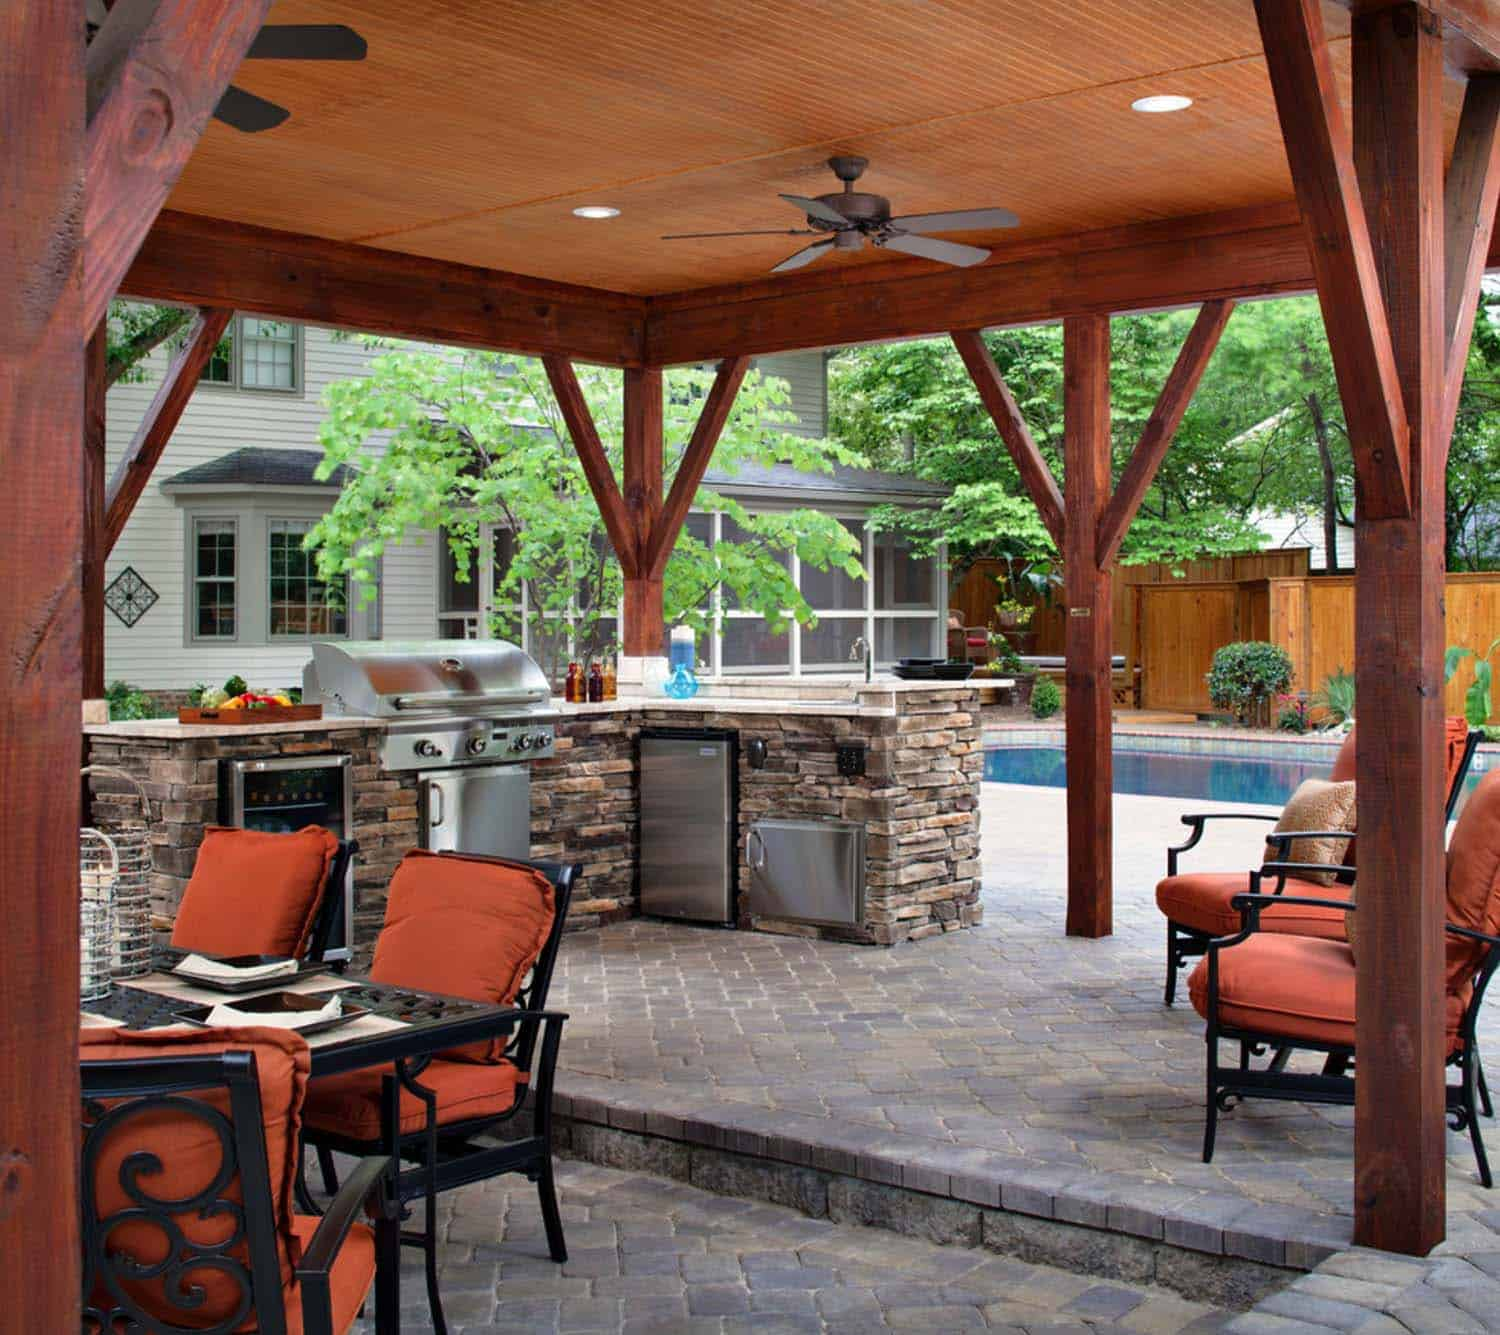 Outdoor Kitchens-Bars Entertaining-15-1 Kindesign.jpg